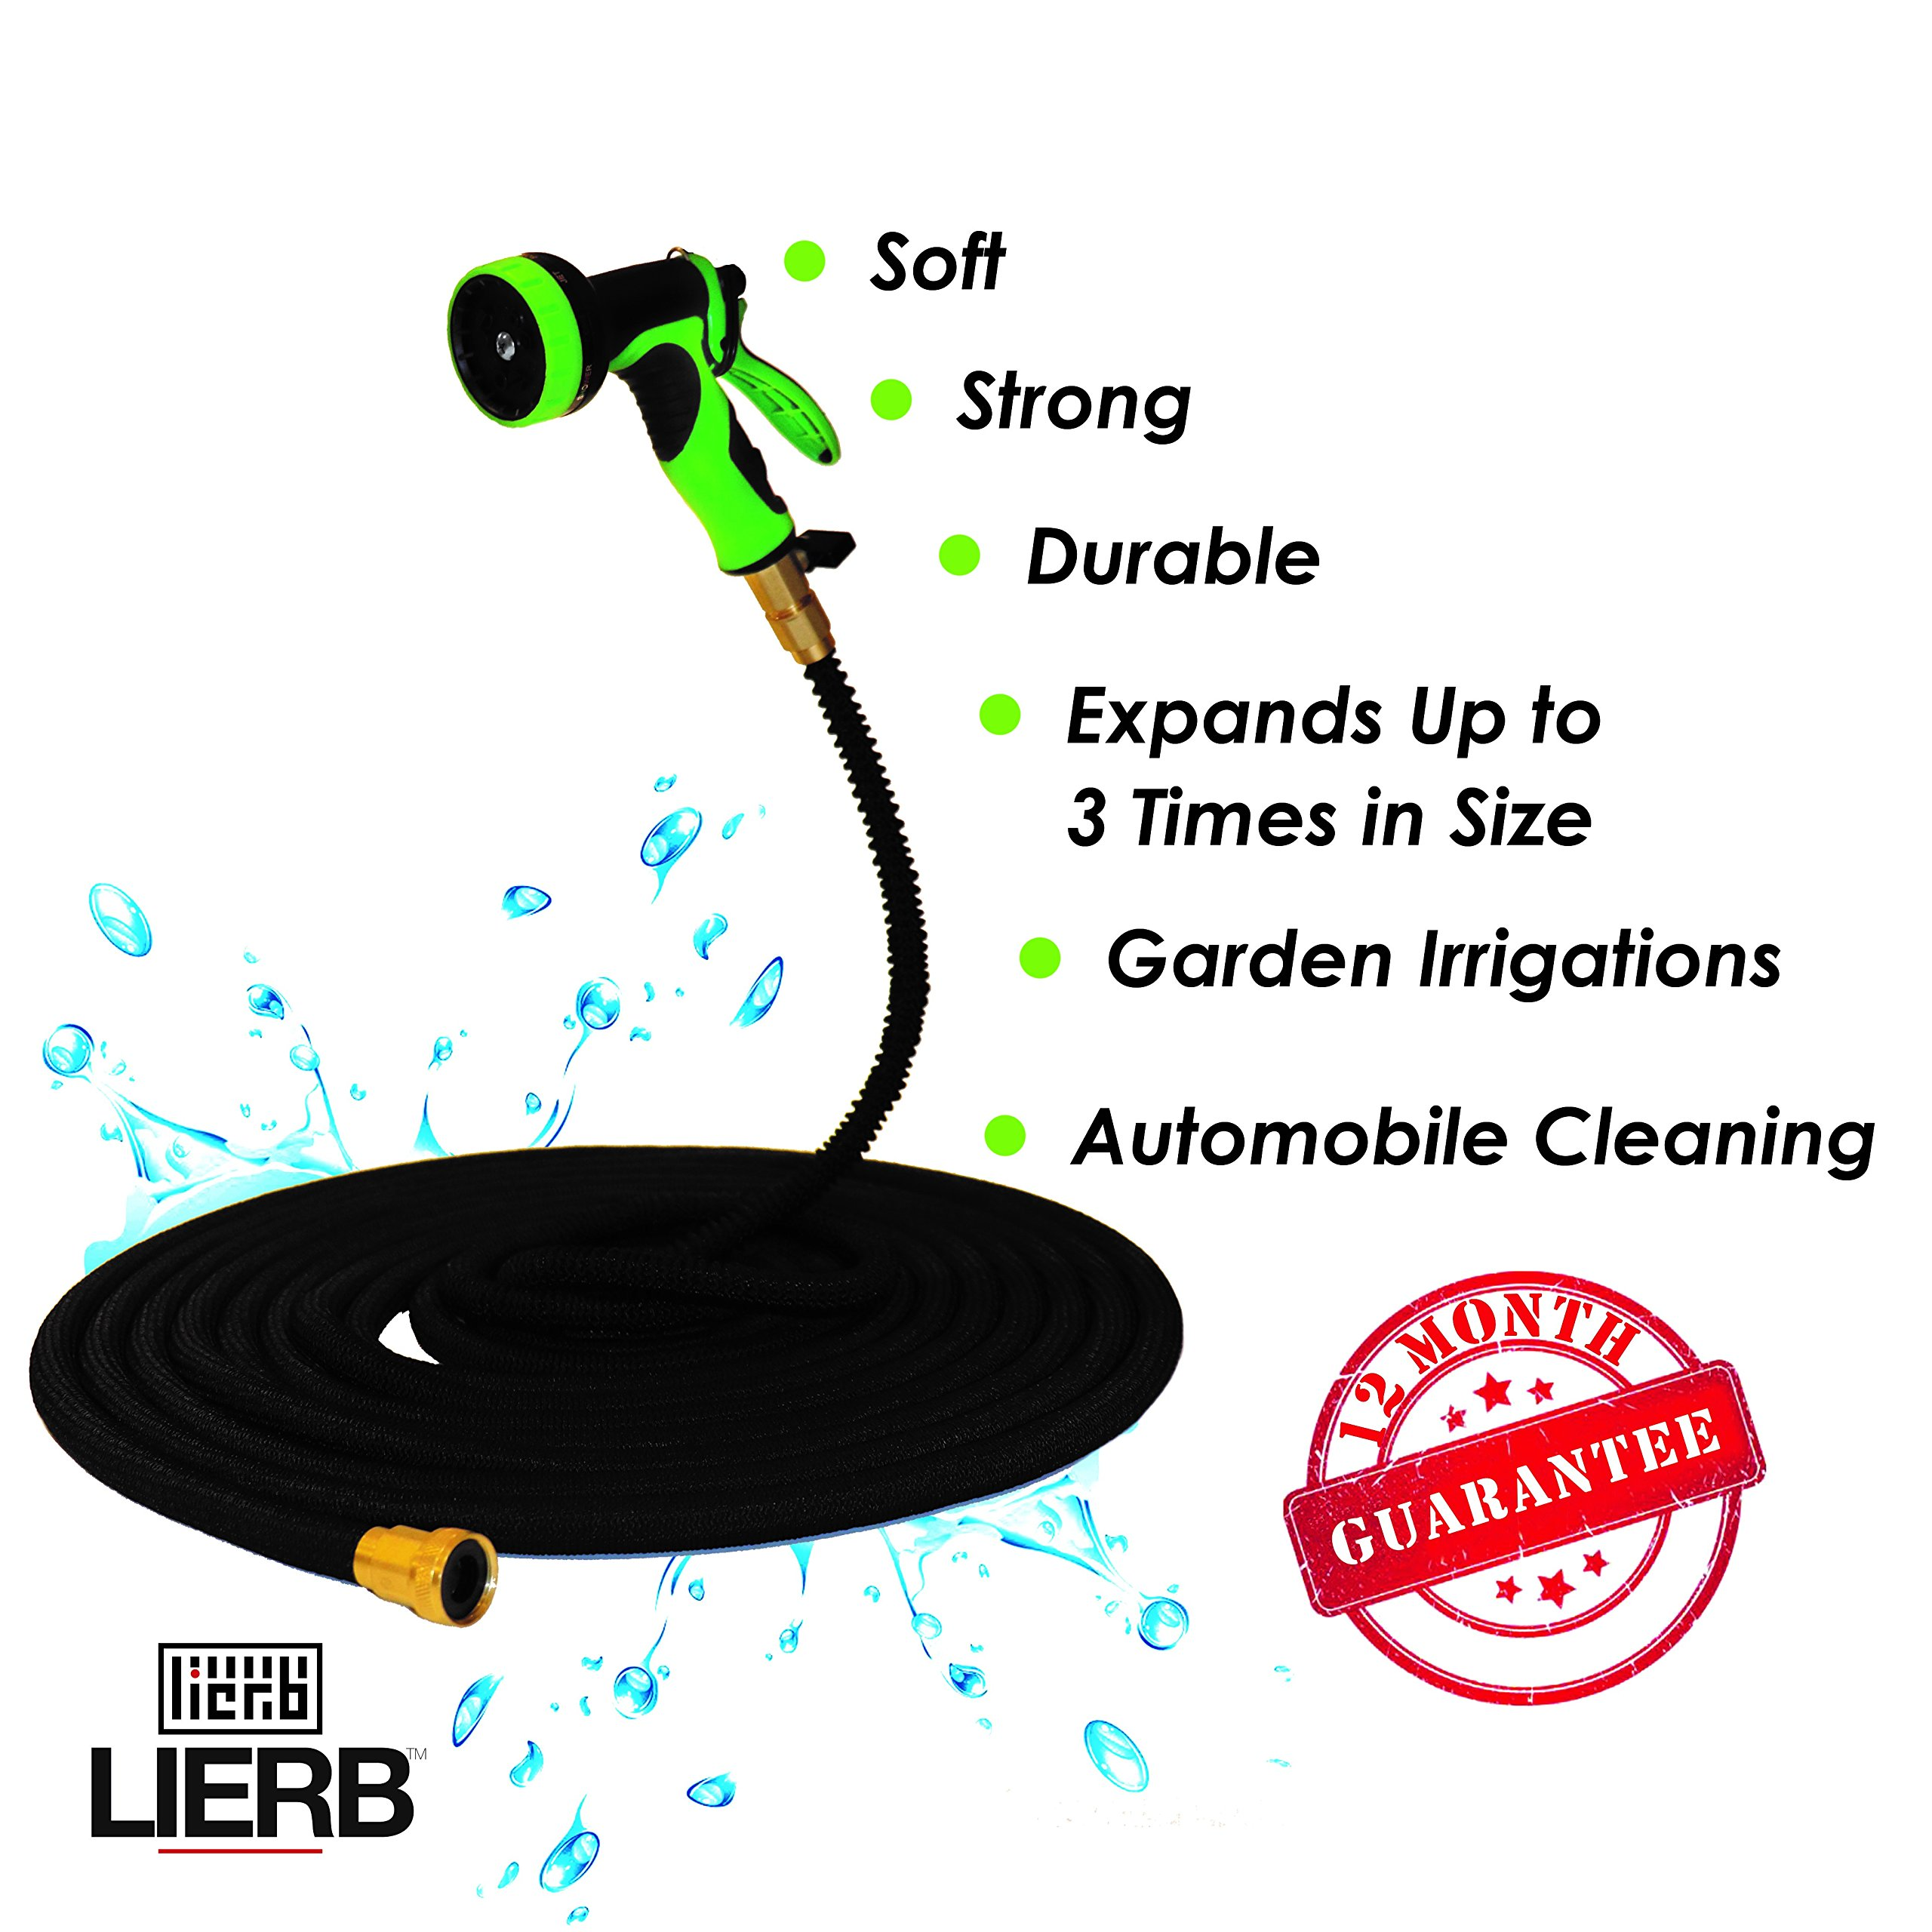 LIERB Expandable Garden Hose with Spray Nozzle Gun (50 ft) Heavy-Duty, Tangle and Kink Free Gardening Use | Water Plants, Lawn, Vegetables | Wash Cars, Pets, Driveways